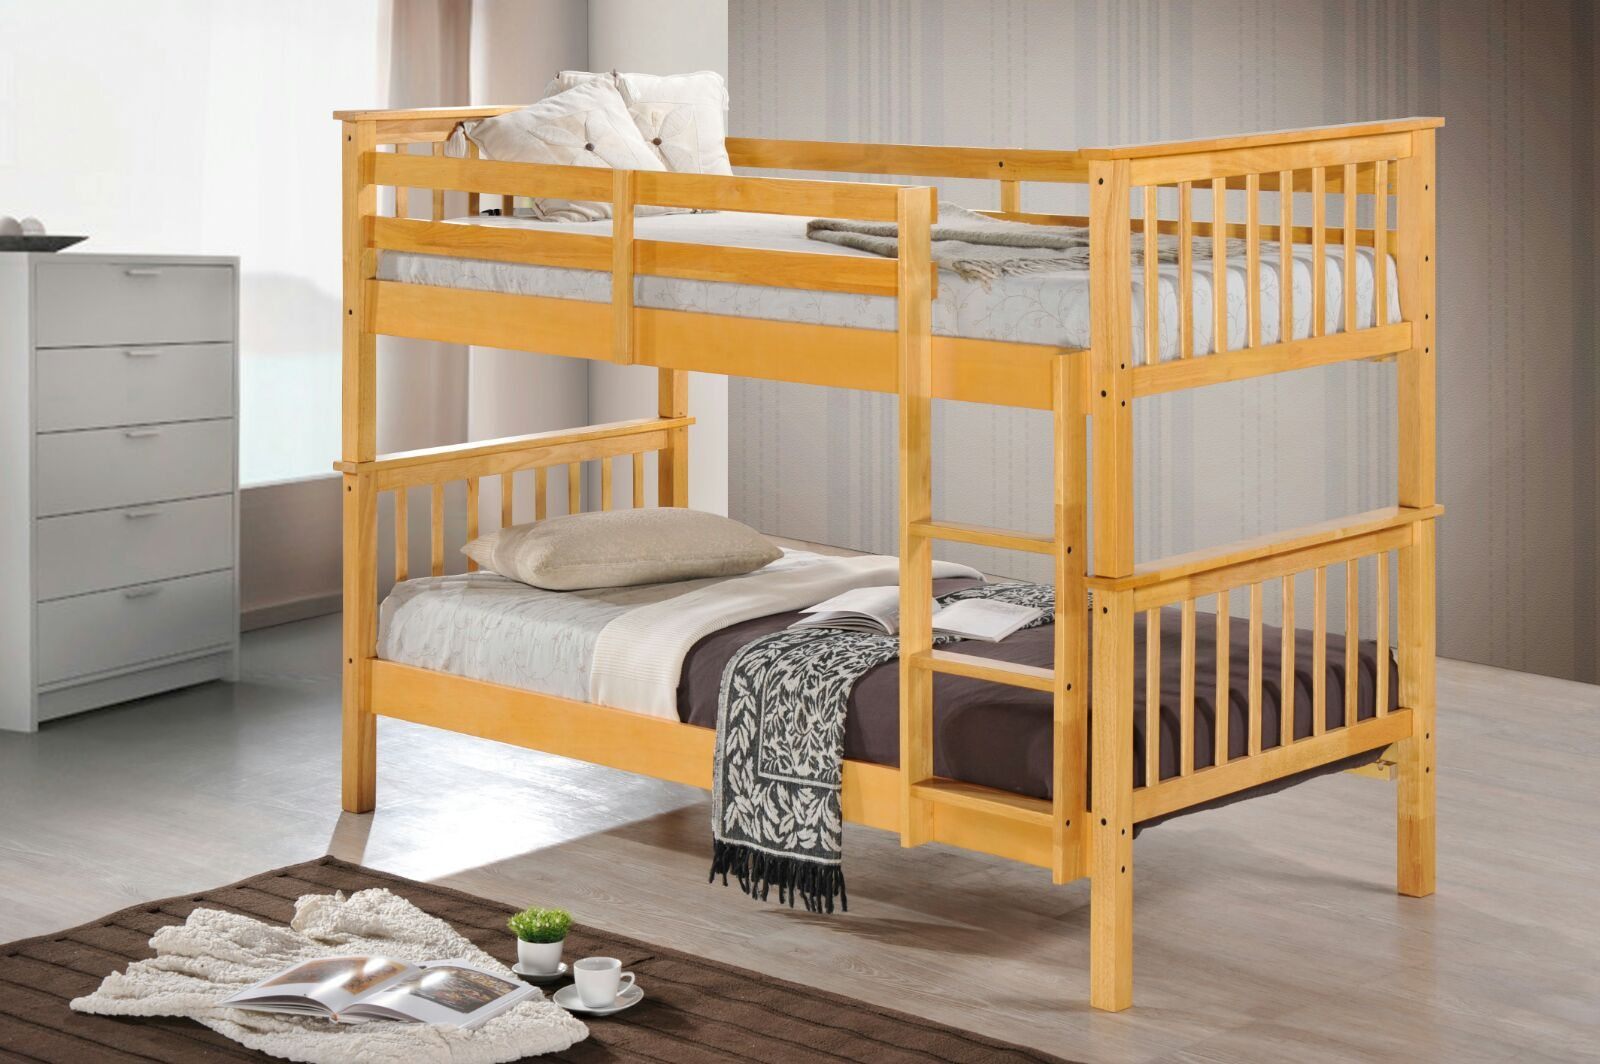 Beech Wooden Bunk Beds